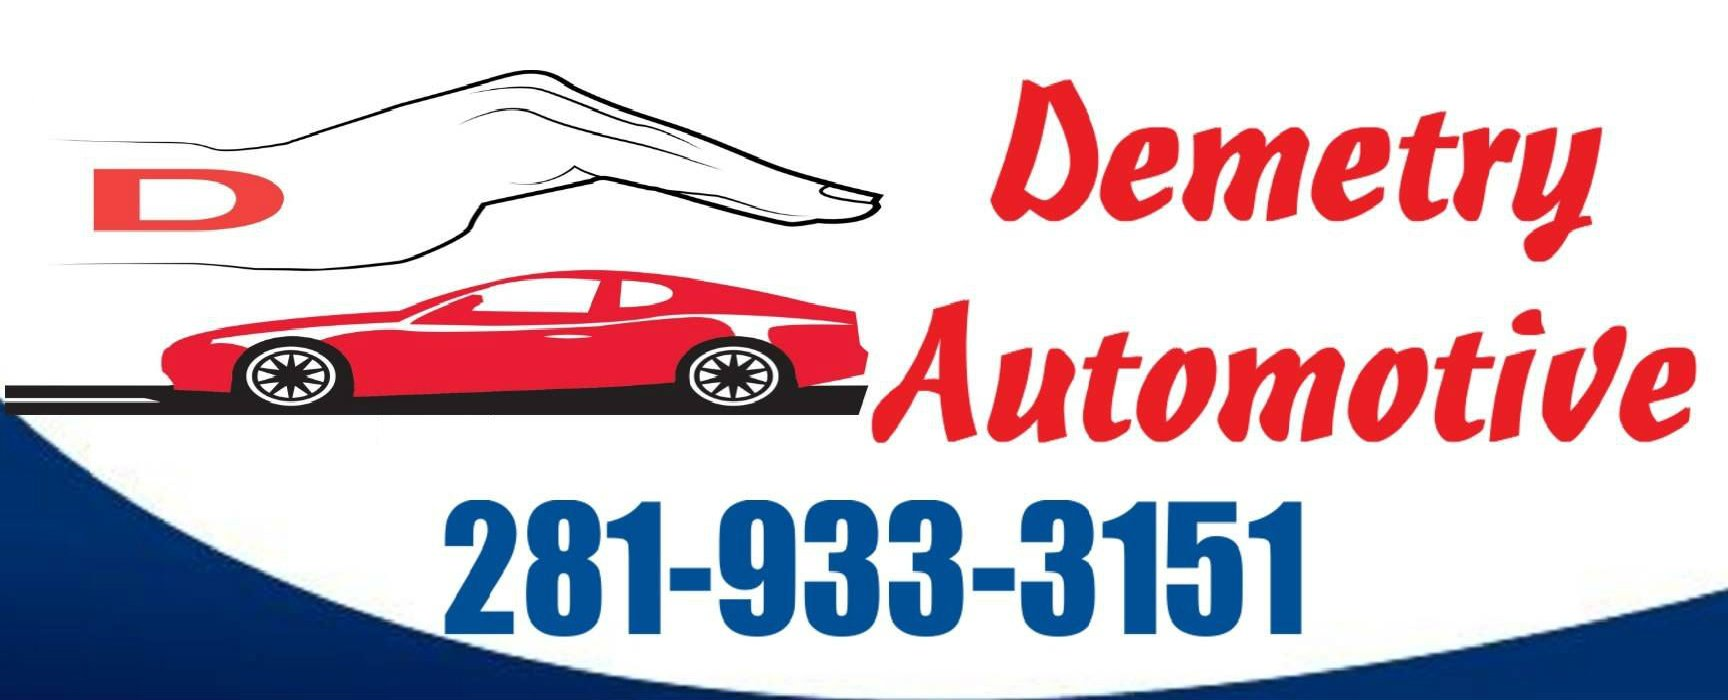 Demetry Automotive